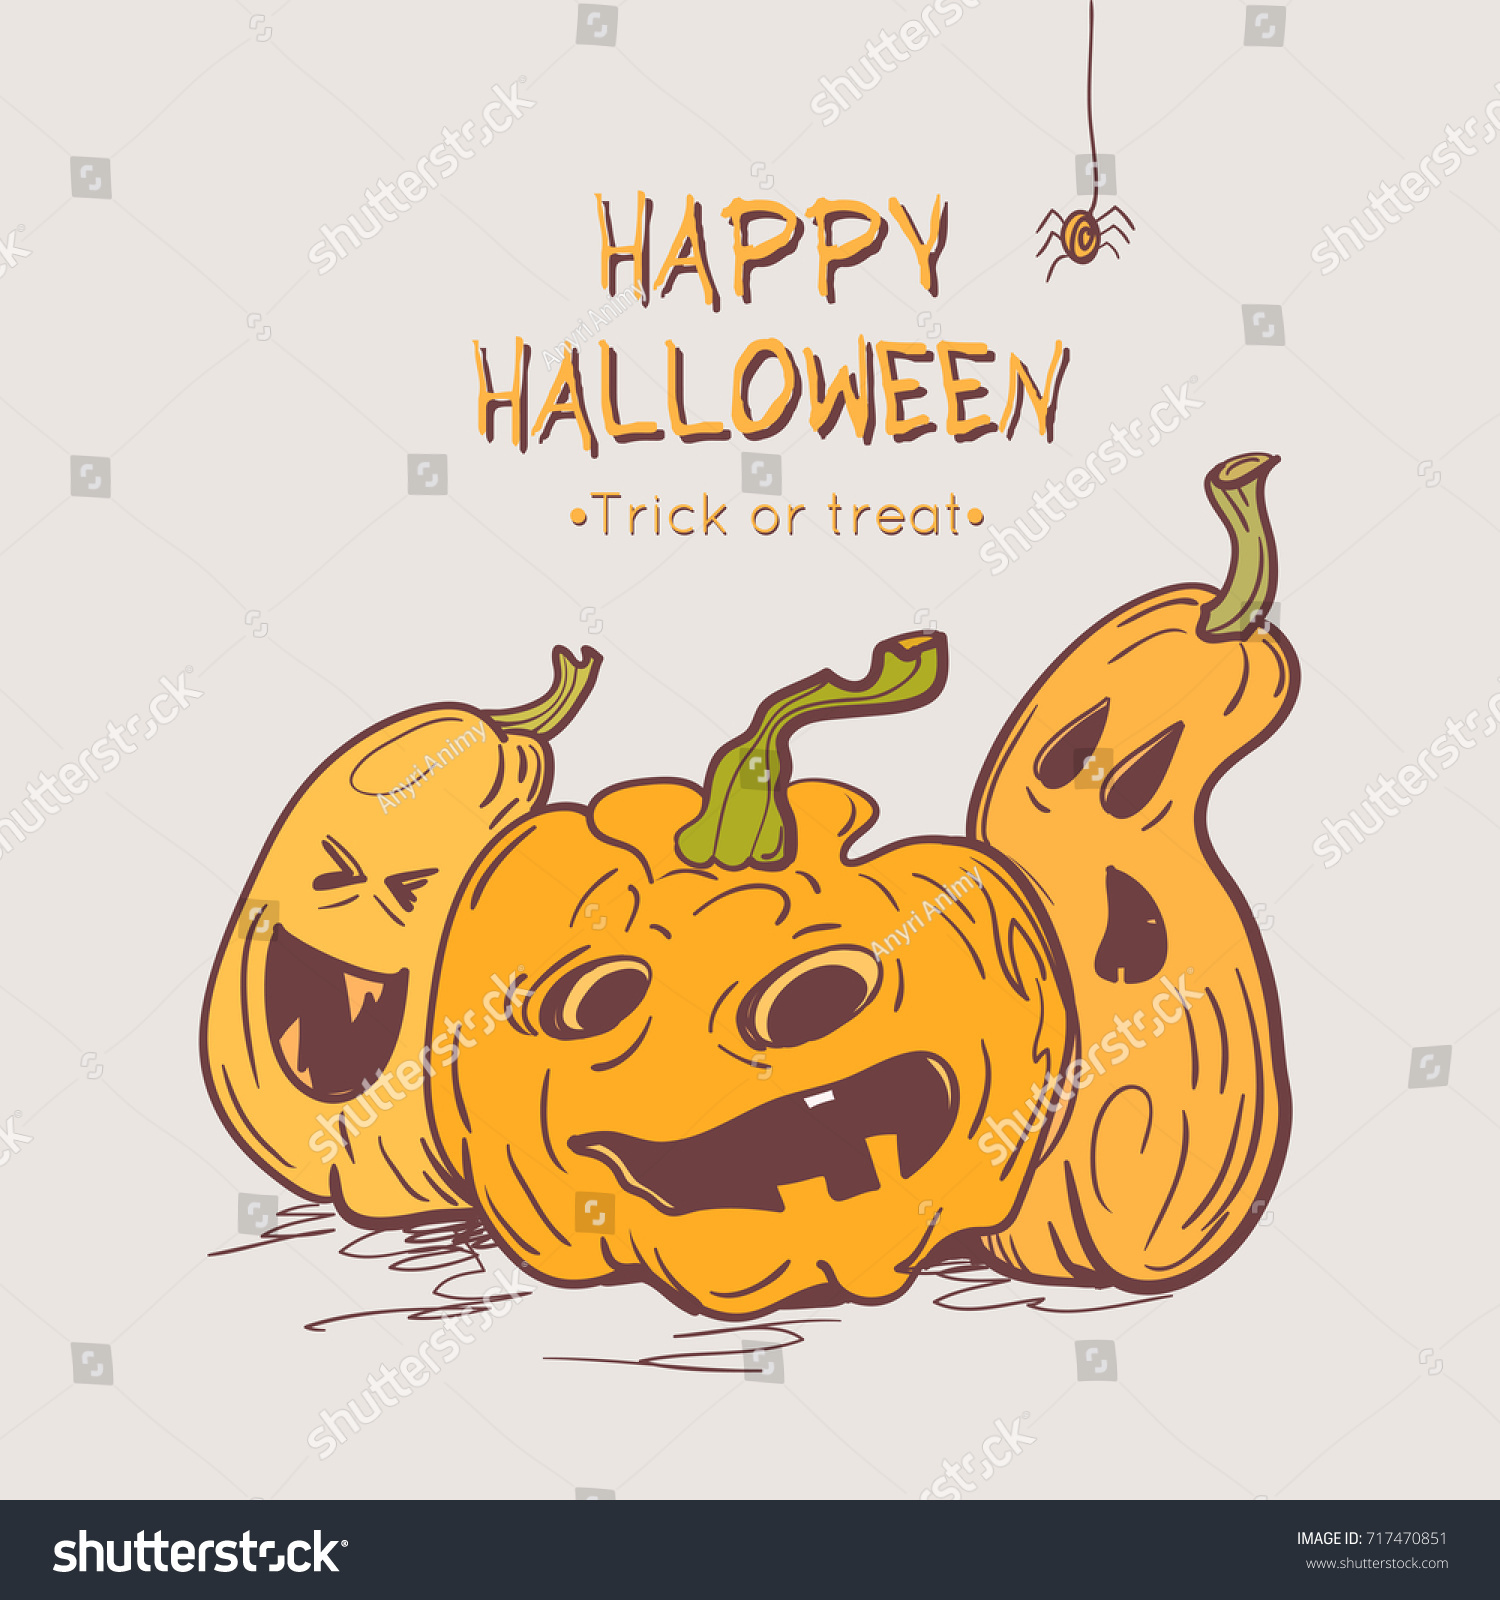 Happy halloween greeting cards pumpkins spider stock vector happy halloween greeting cards with pumpkins and spider colorful template for halloween design vector kristyandbryce Images